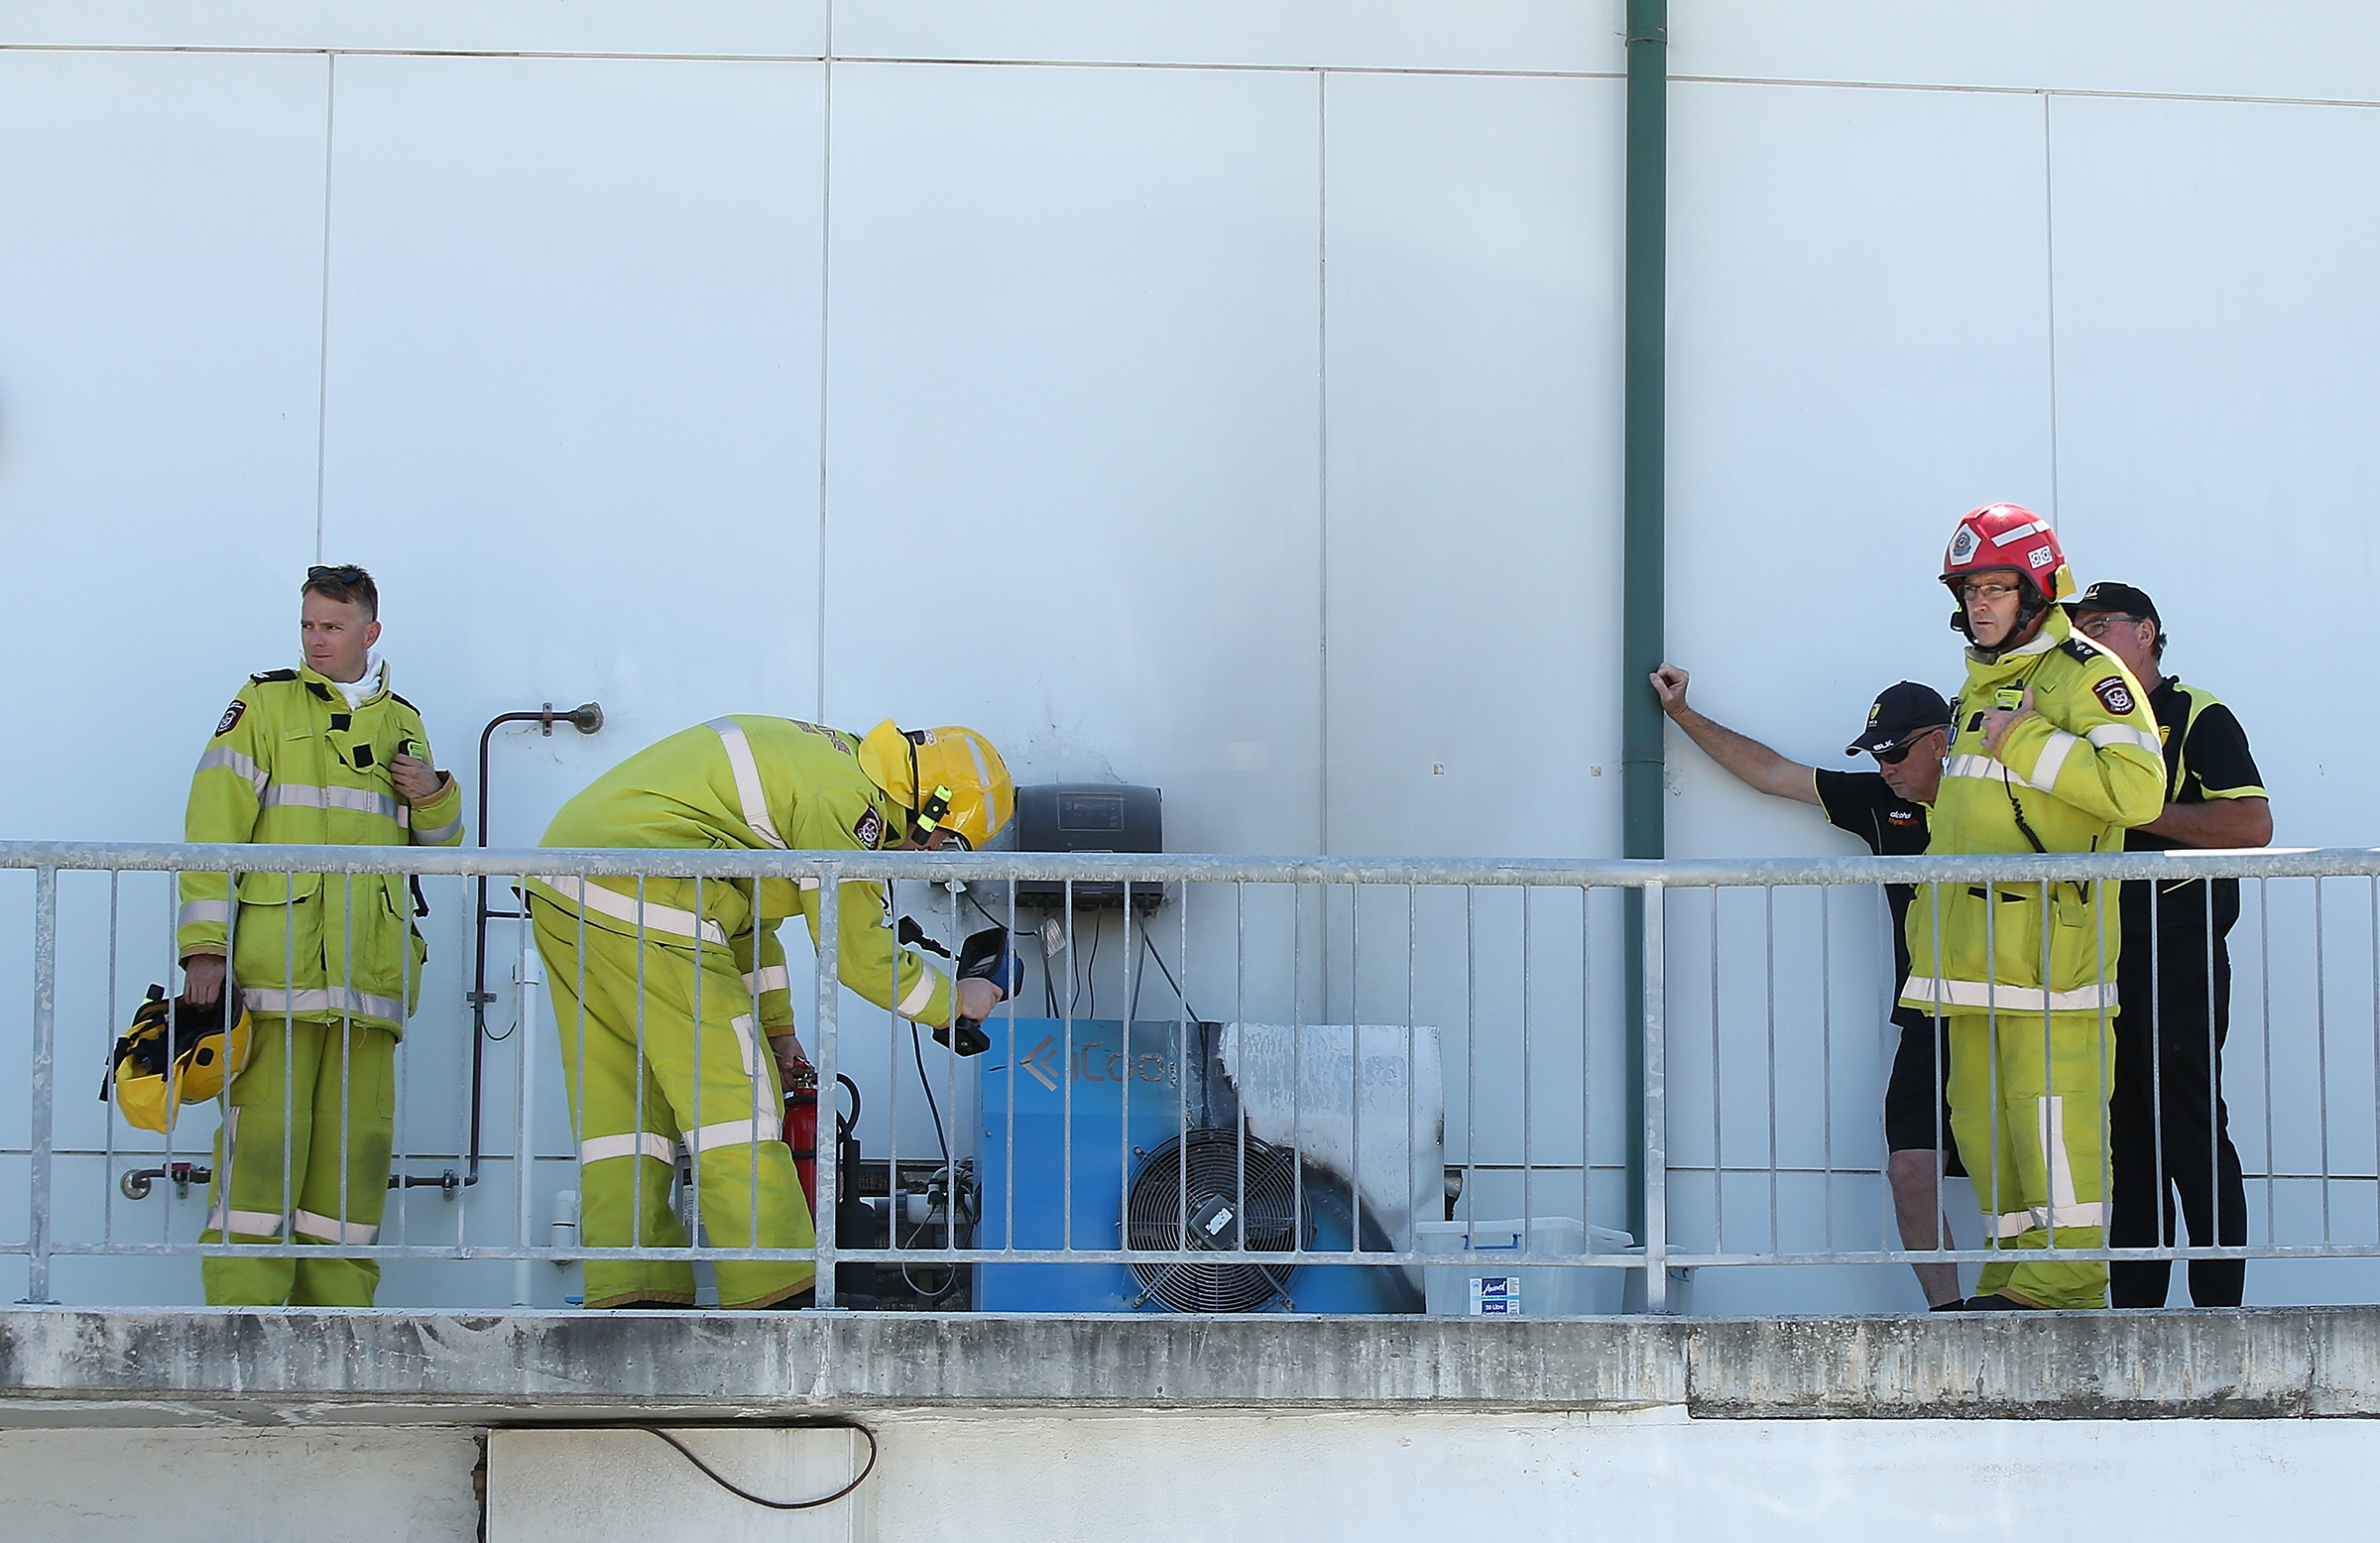 Firemen investigate the guilty air-conditioning unit // Getty